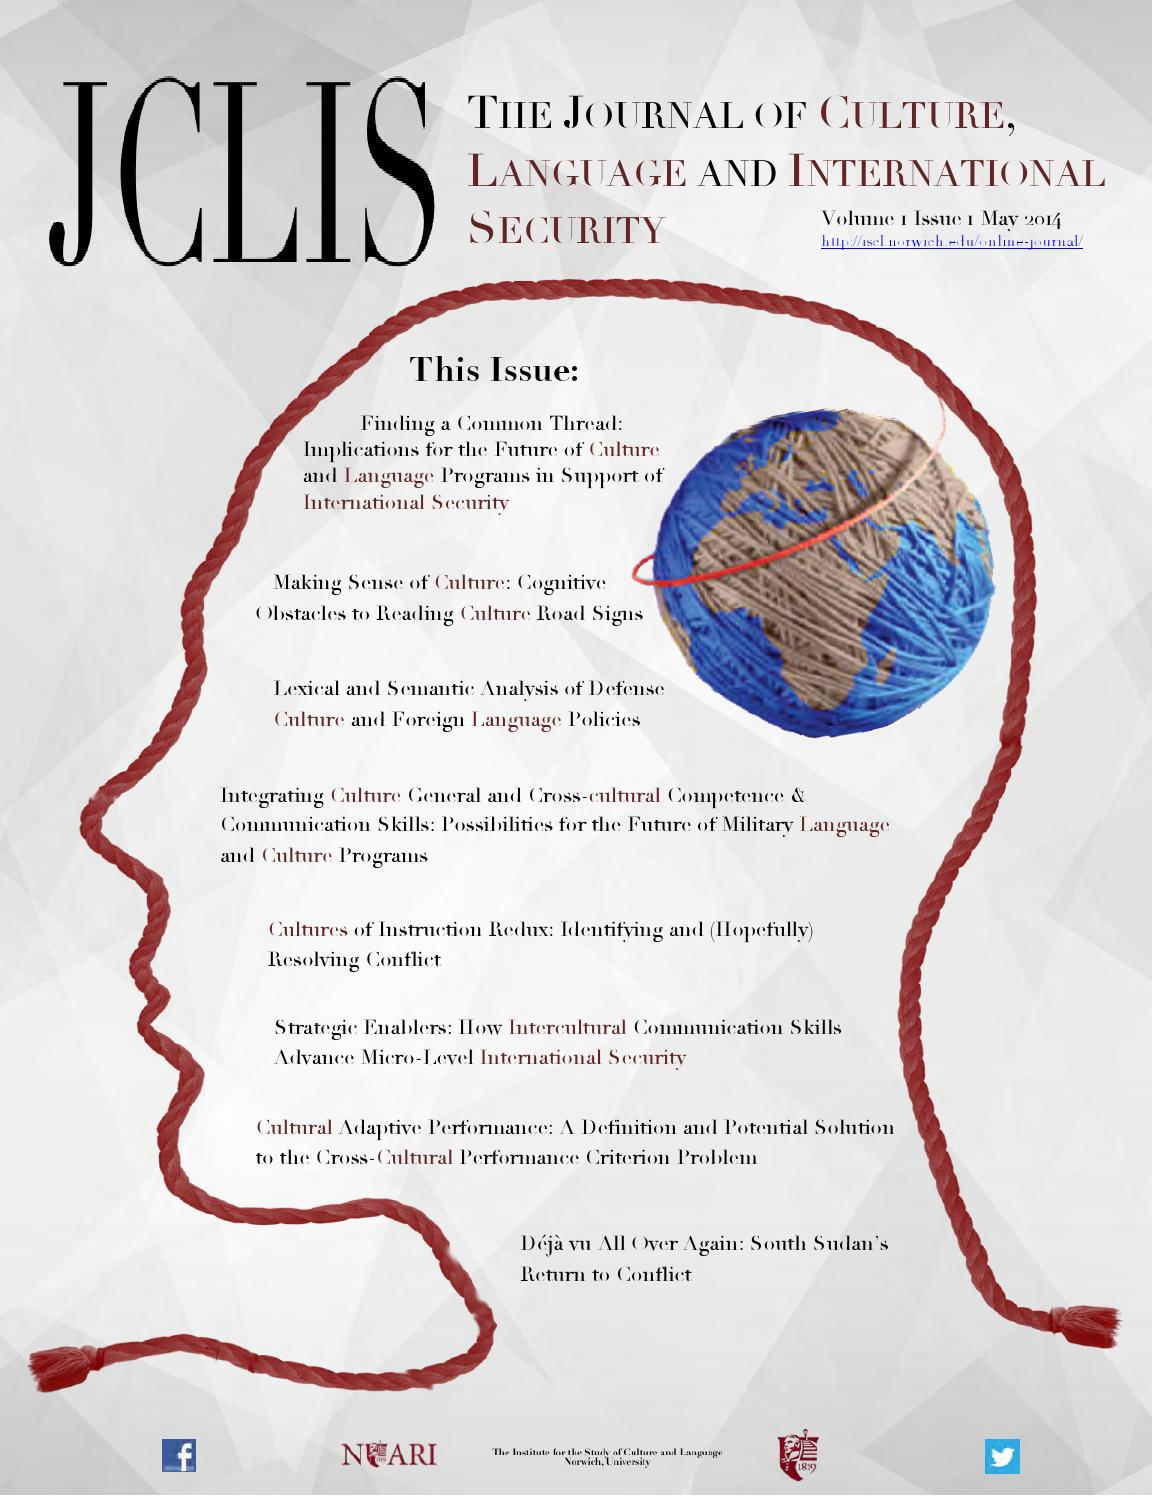 The Journal of Culture, Language and International Security